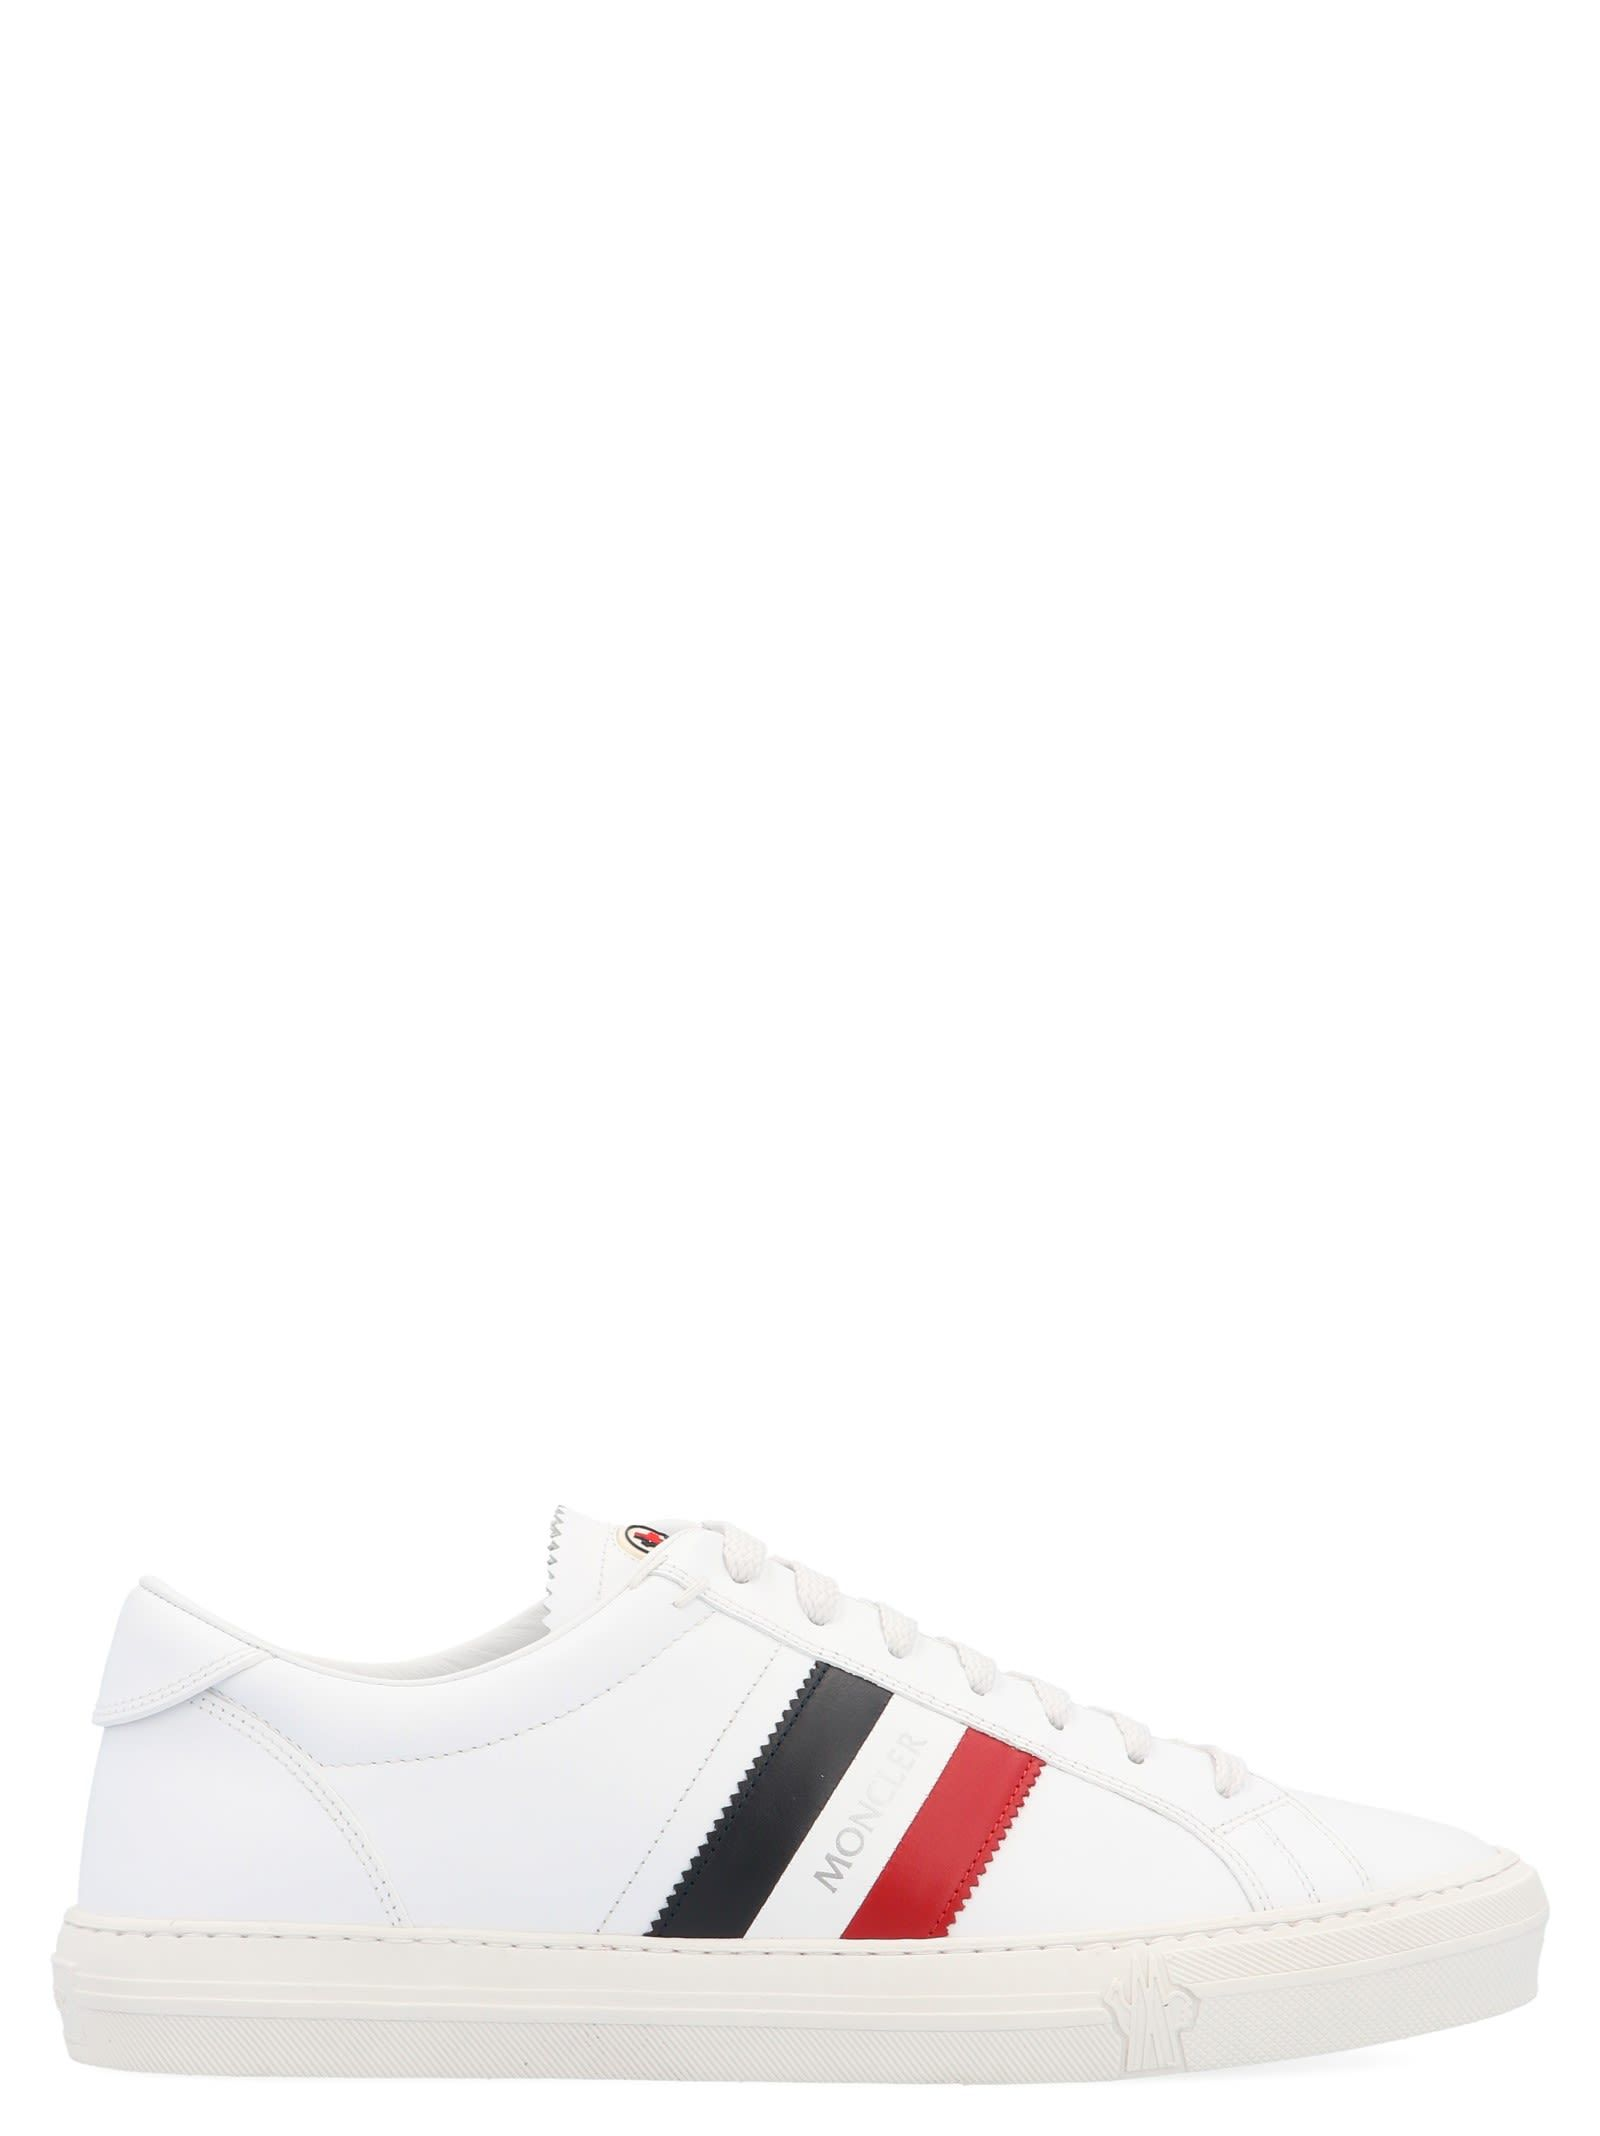 73b949320 MONCLER 'NEW MONACO' SHOES. #moncler #shoes | Moncler in 2019 ...